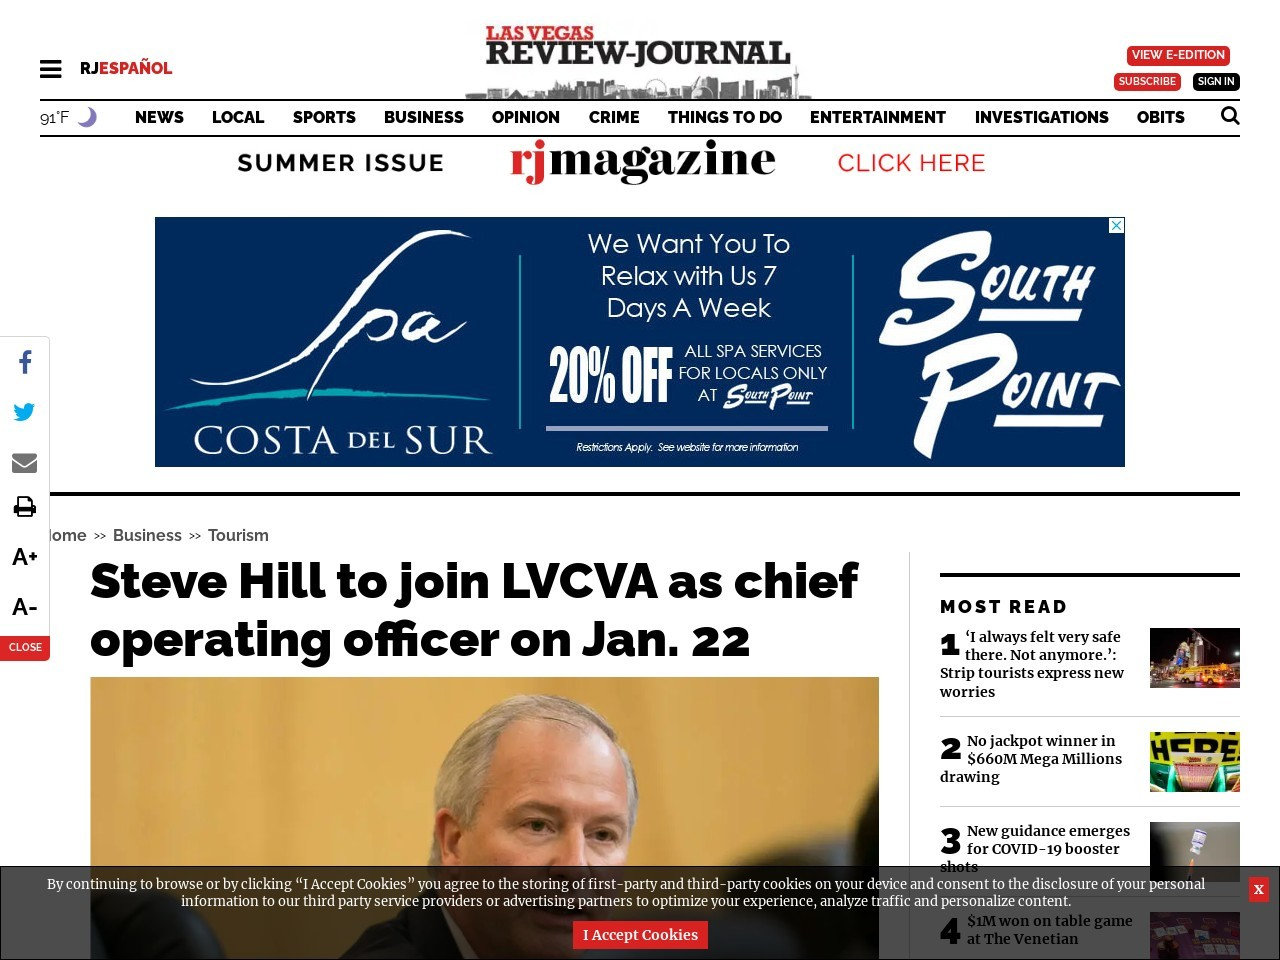 Steve Hill to join LVCVA as chief operating officer on Jan. 22